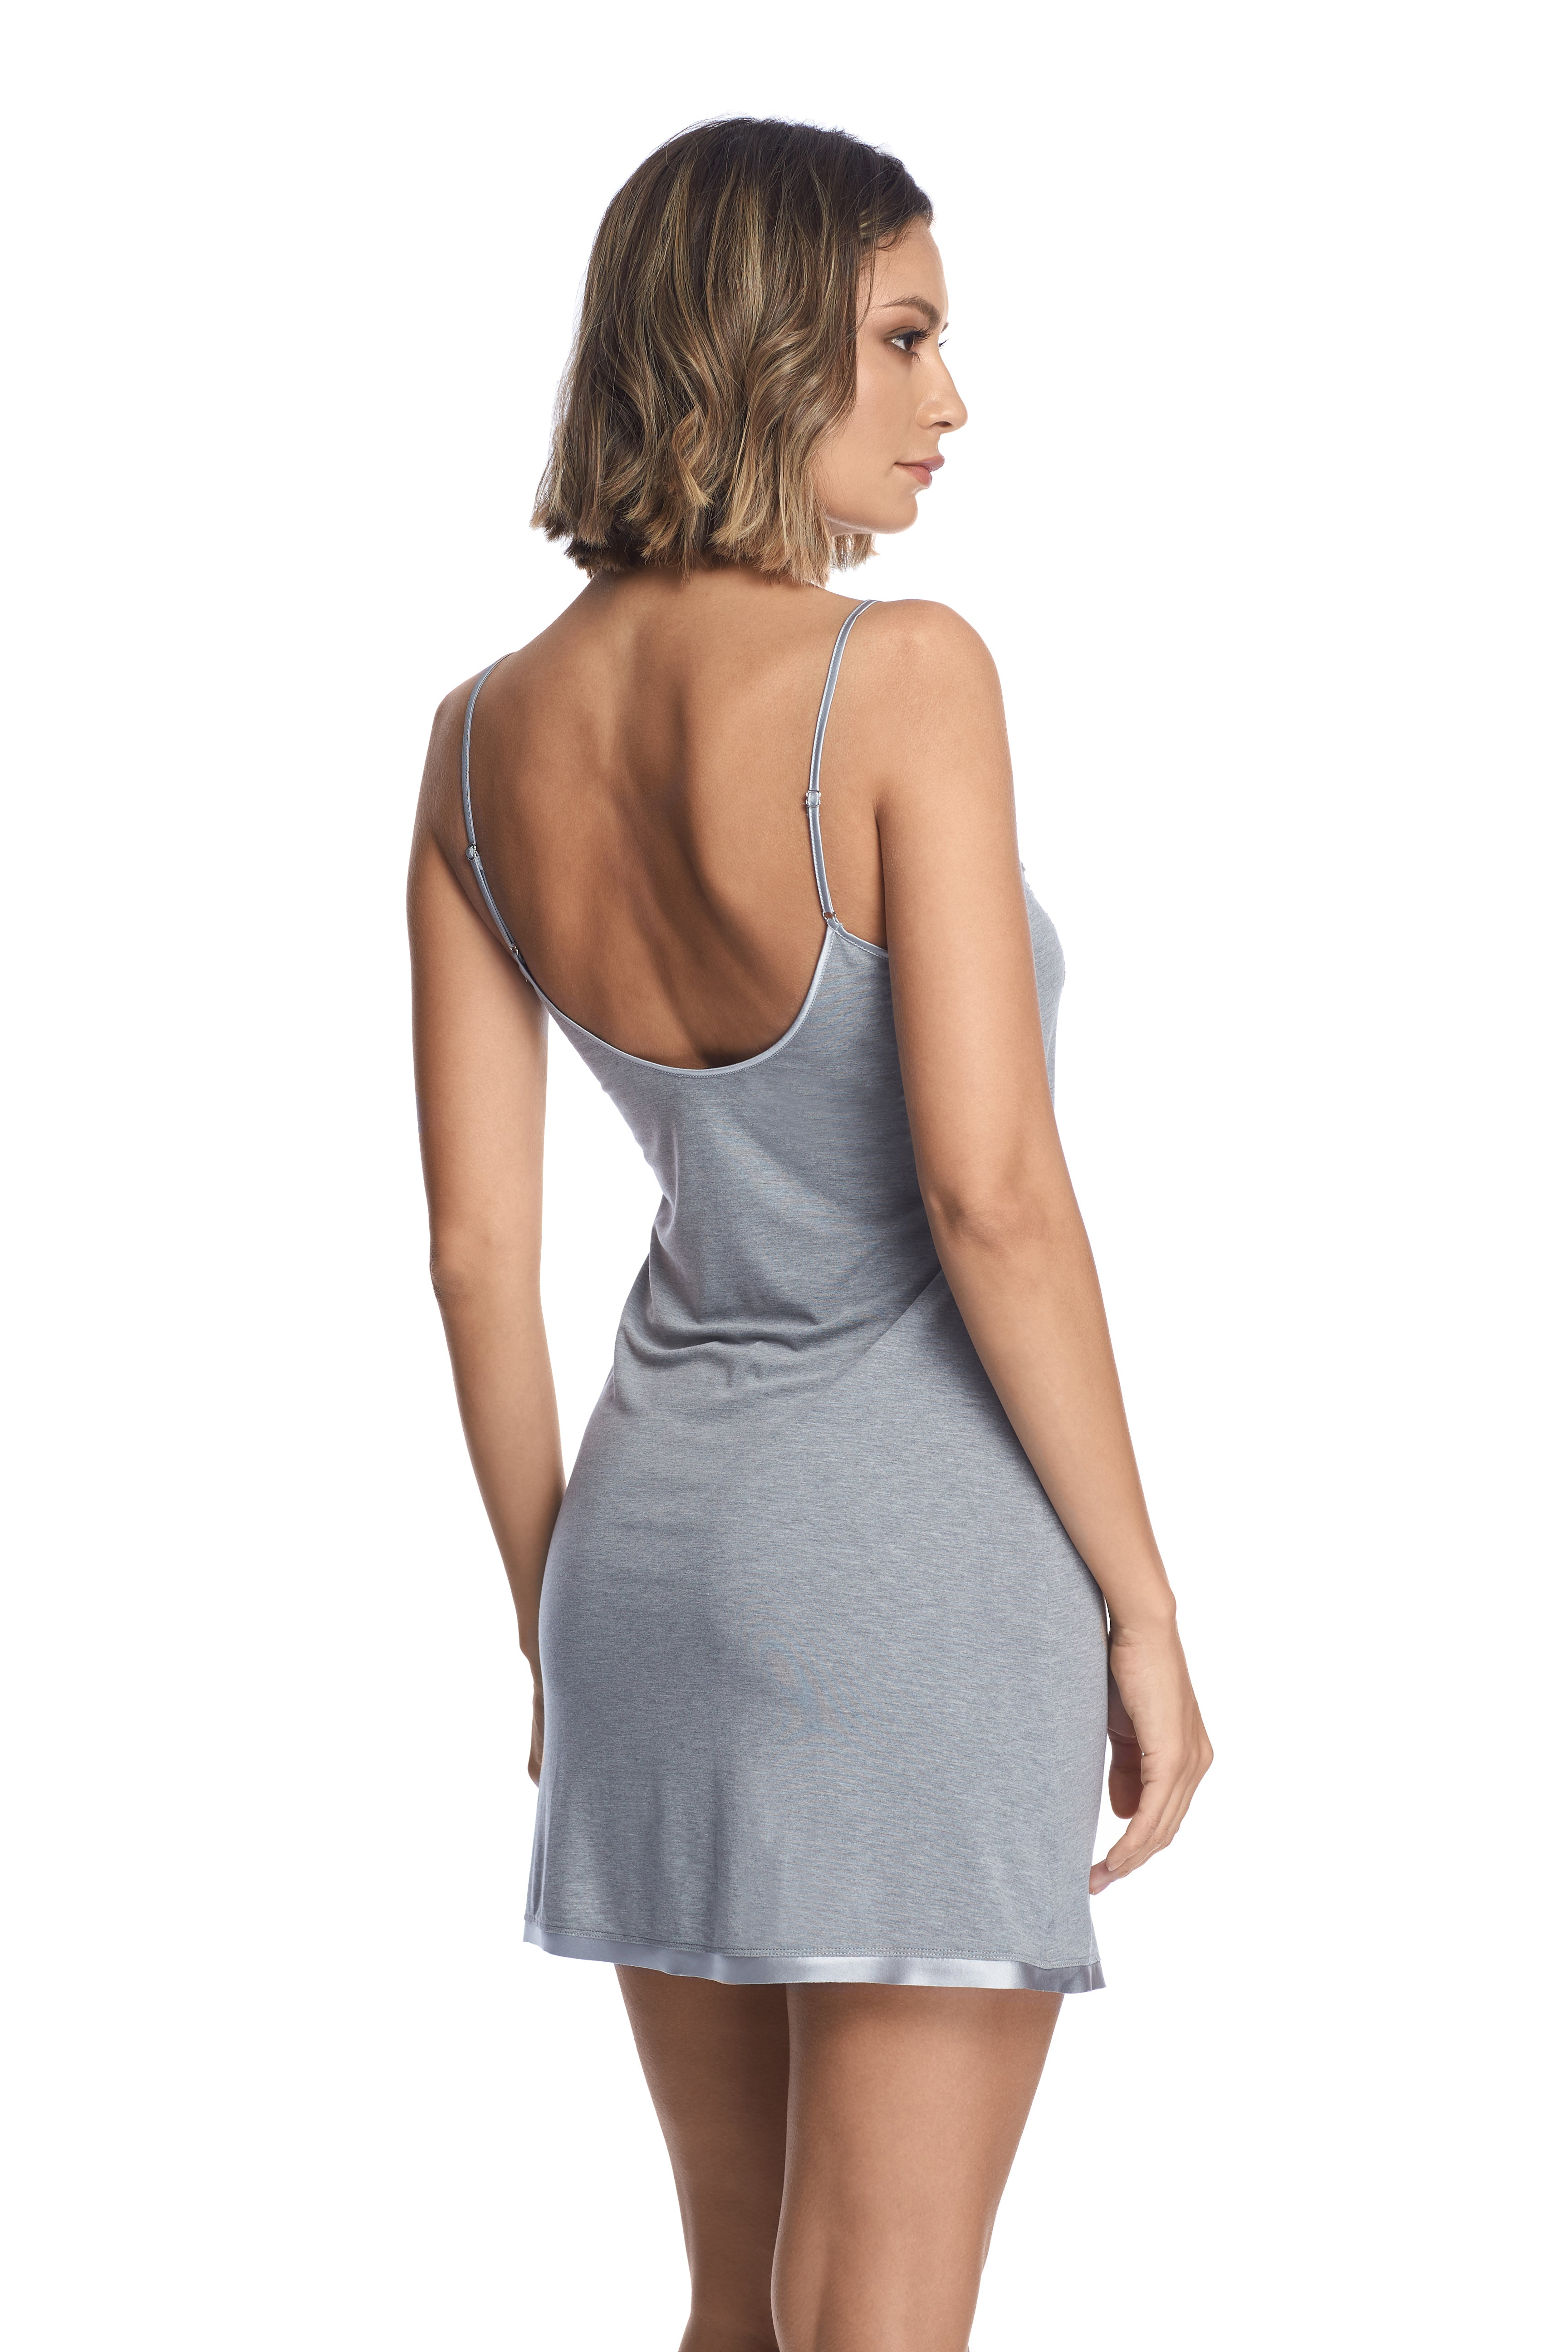 Kensington Mornings Chemise in Grey - I.D. Sarrieri